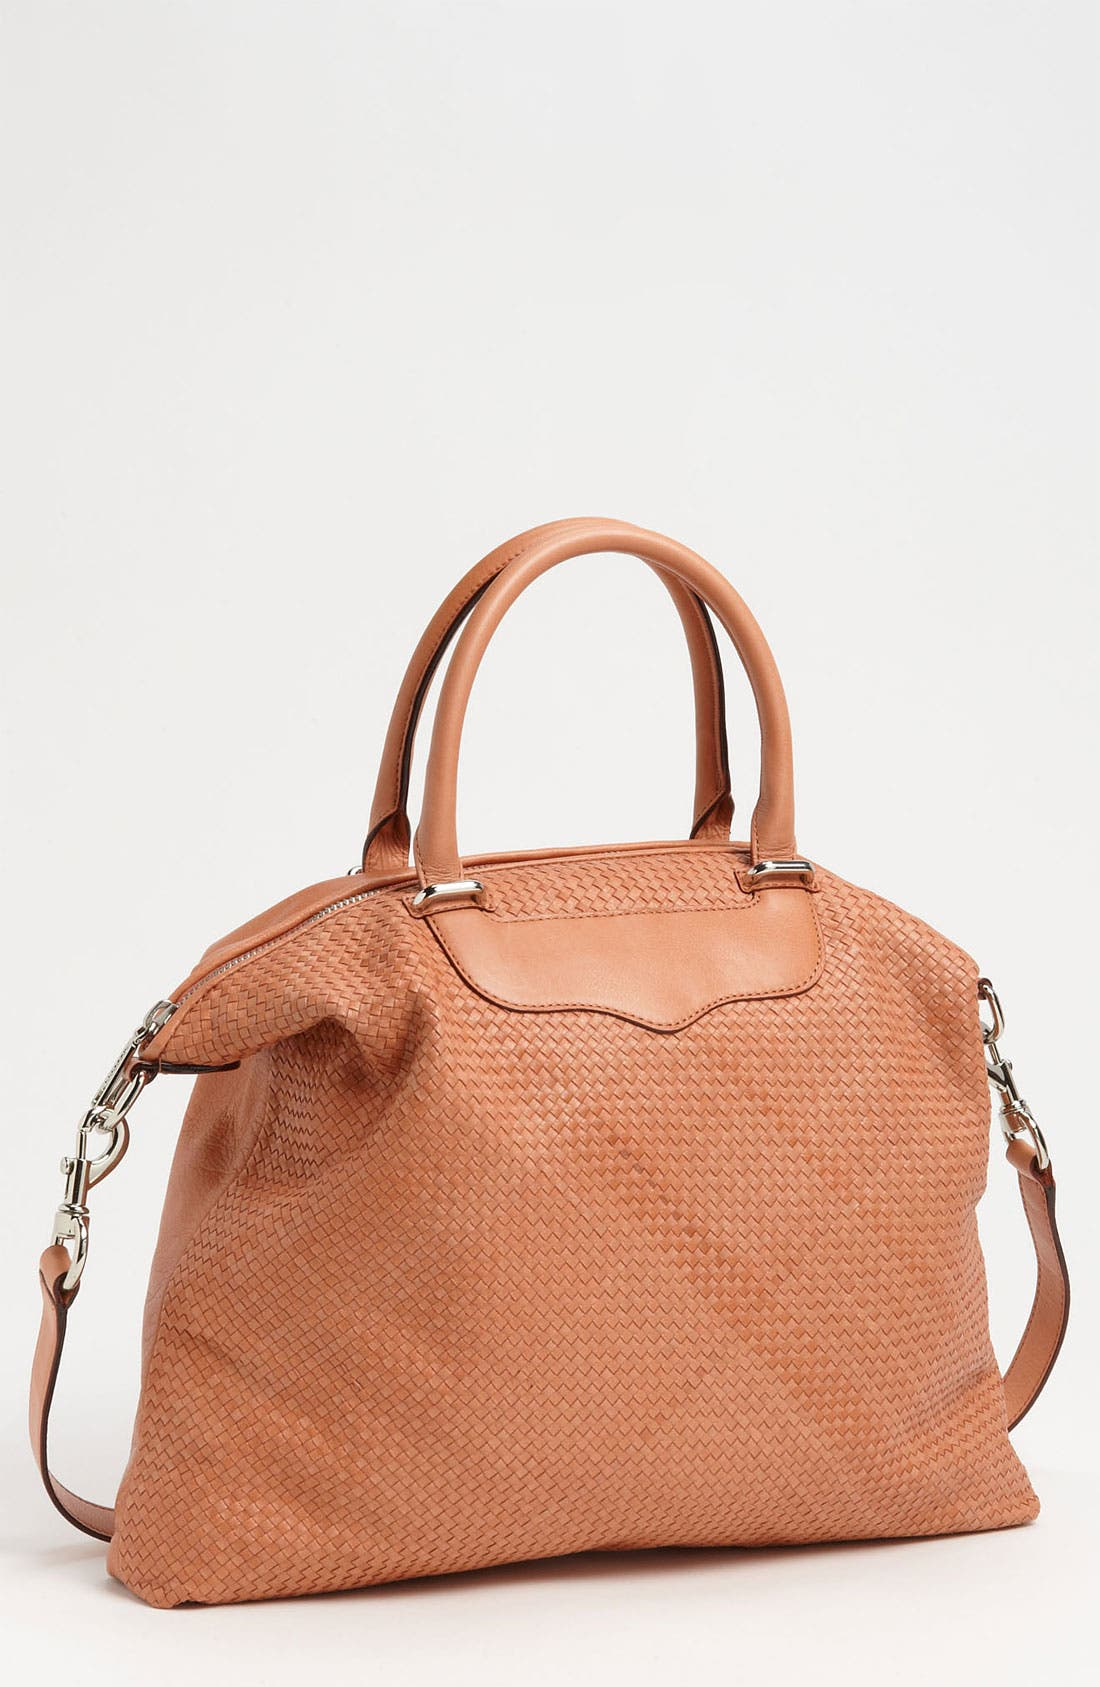 Alternate Image 1 Selected - Rebecca Minkoff 'Bonnie' Satchel